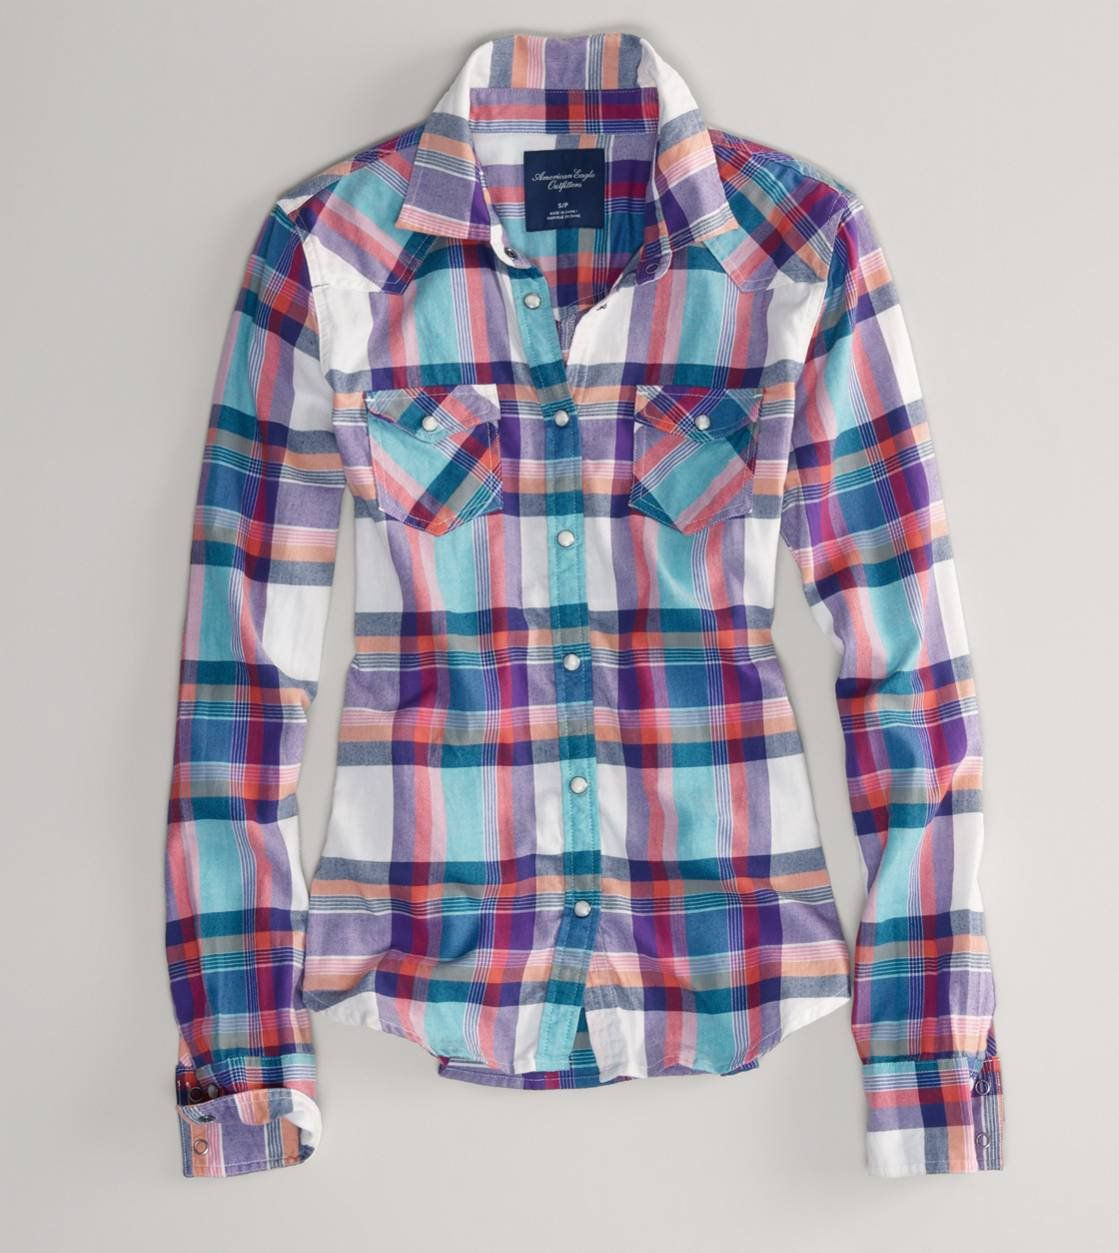 Flannel over shirt  AE Plaid Flannel Western Shirt  My Crazzie Style  Pinterest